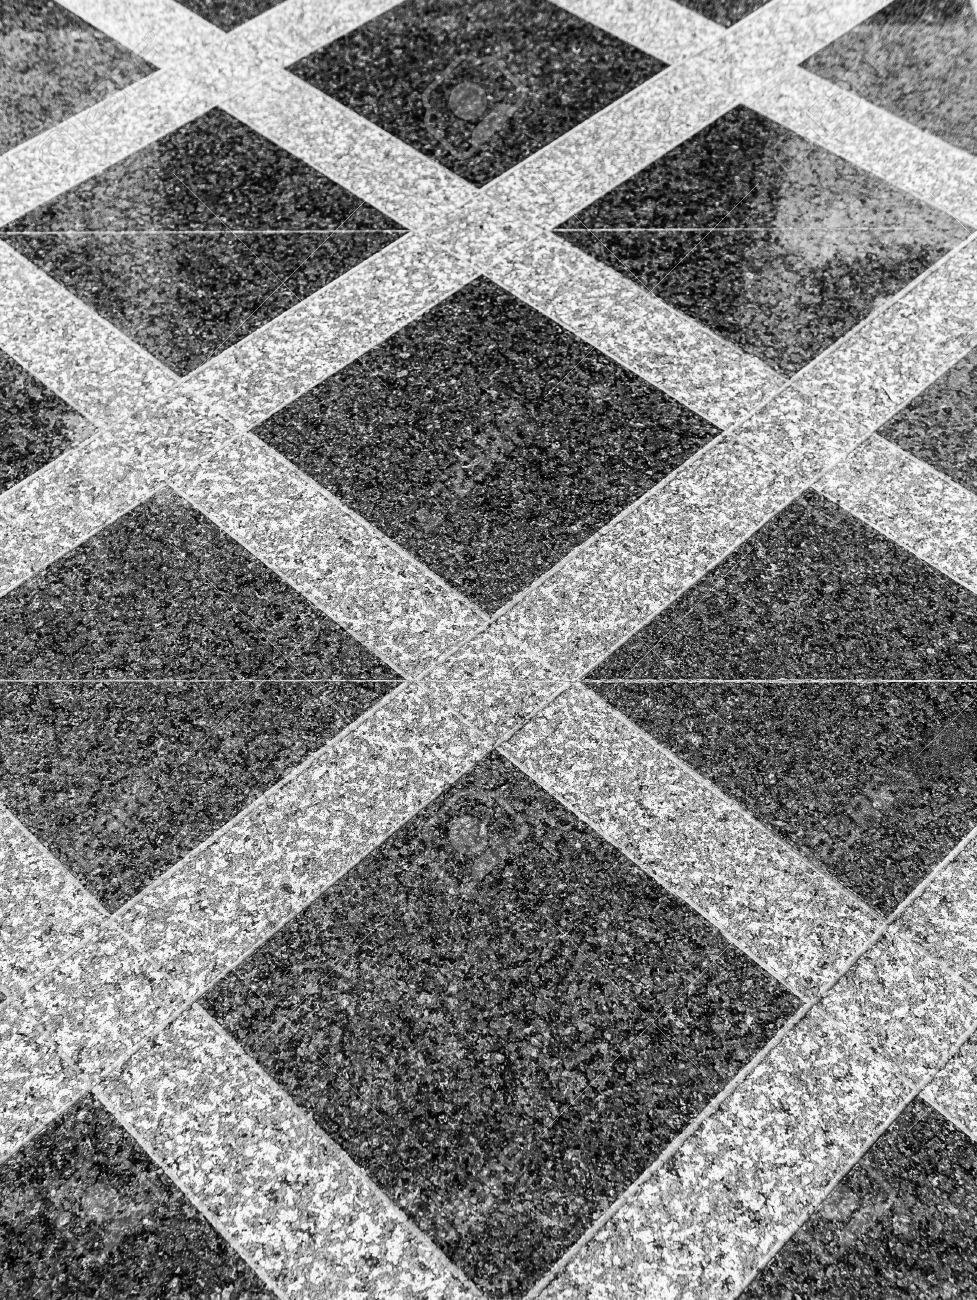 Marble Or Granite Floor Slabs For Outside Pavement Flooring... Stock Photo, Picture And Royalty Free Image. Image 62347814.